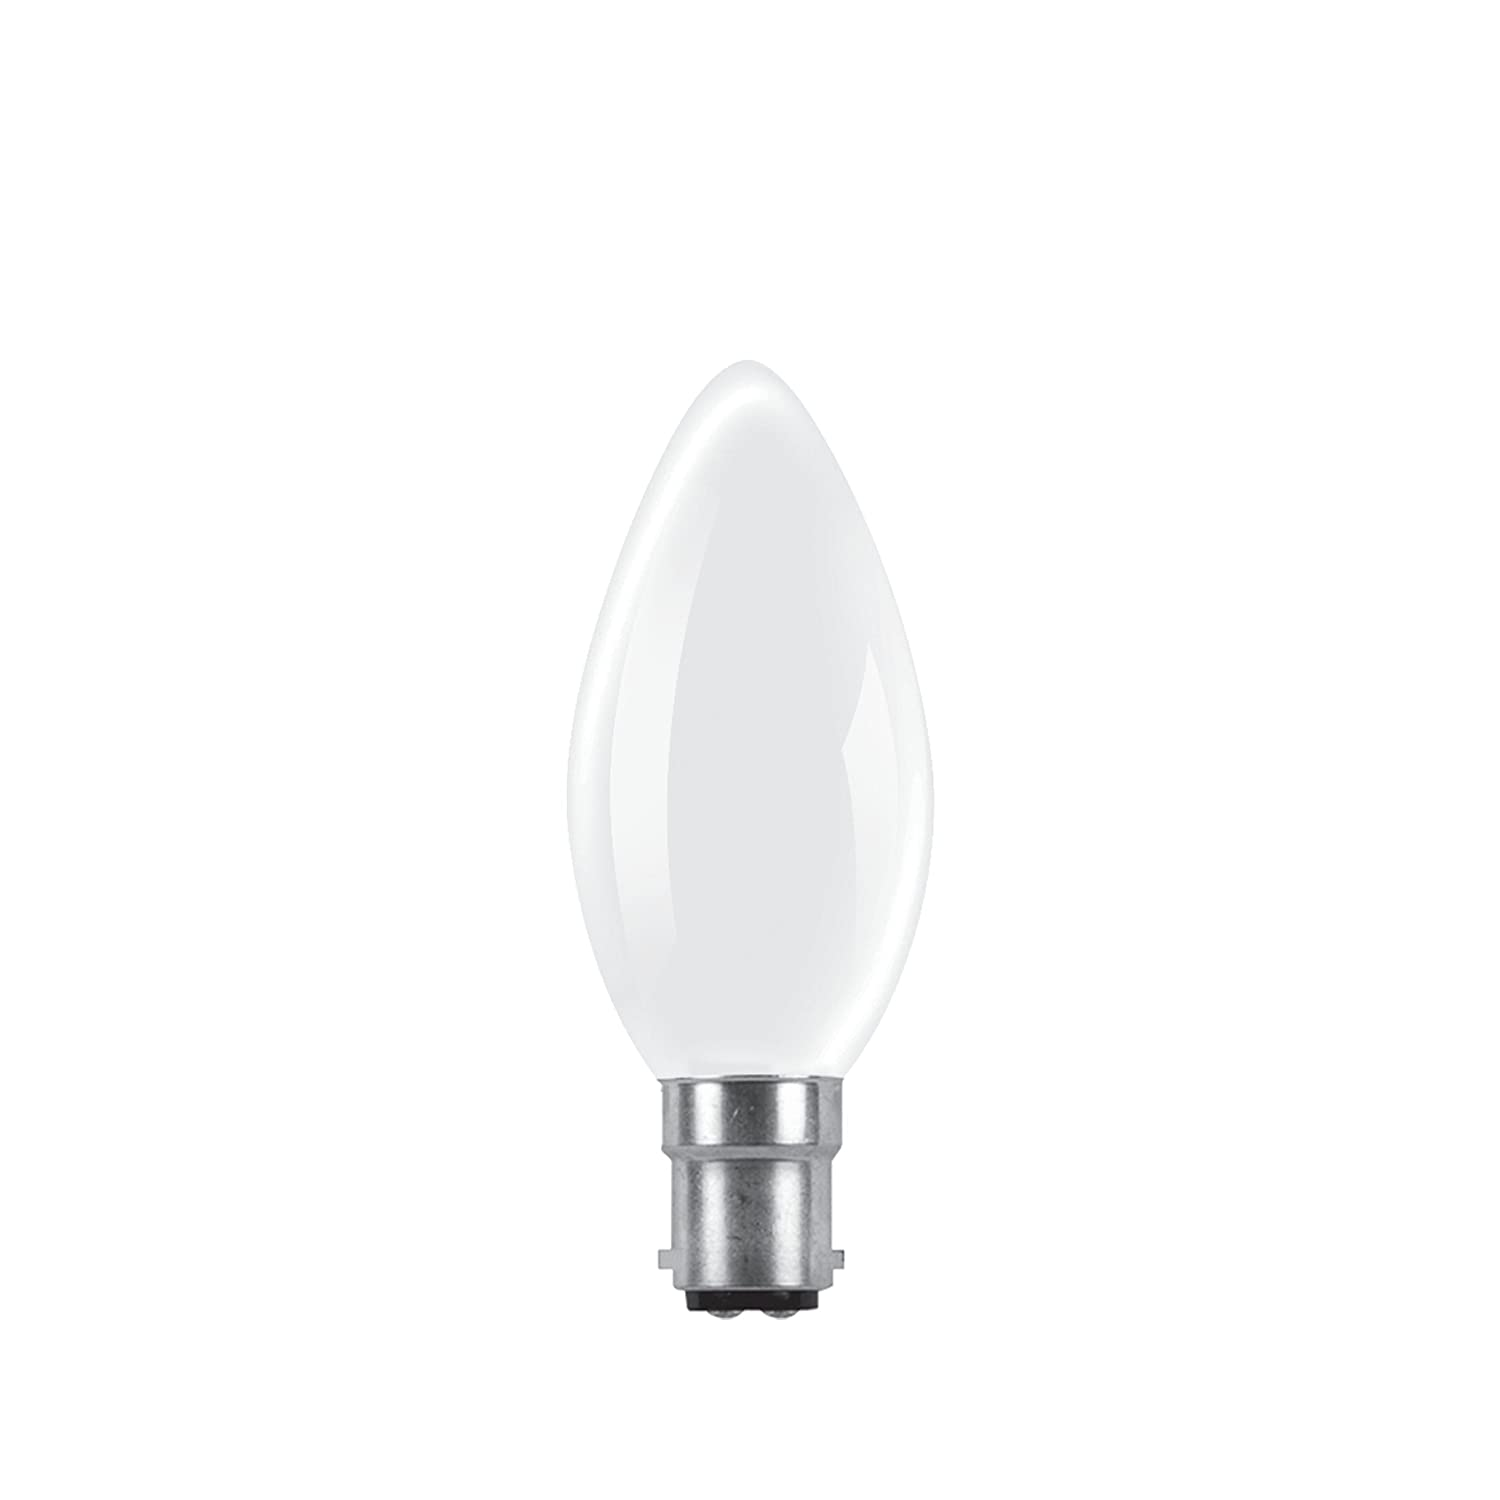 Bulk Hardware BH02448 Rough Service Candle Bulb, Frosted 60 W Small Bayonet Cap - Pack of 10